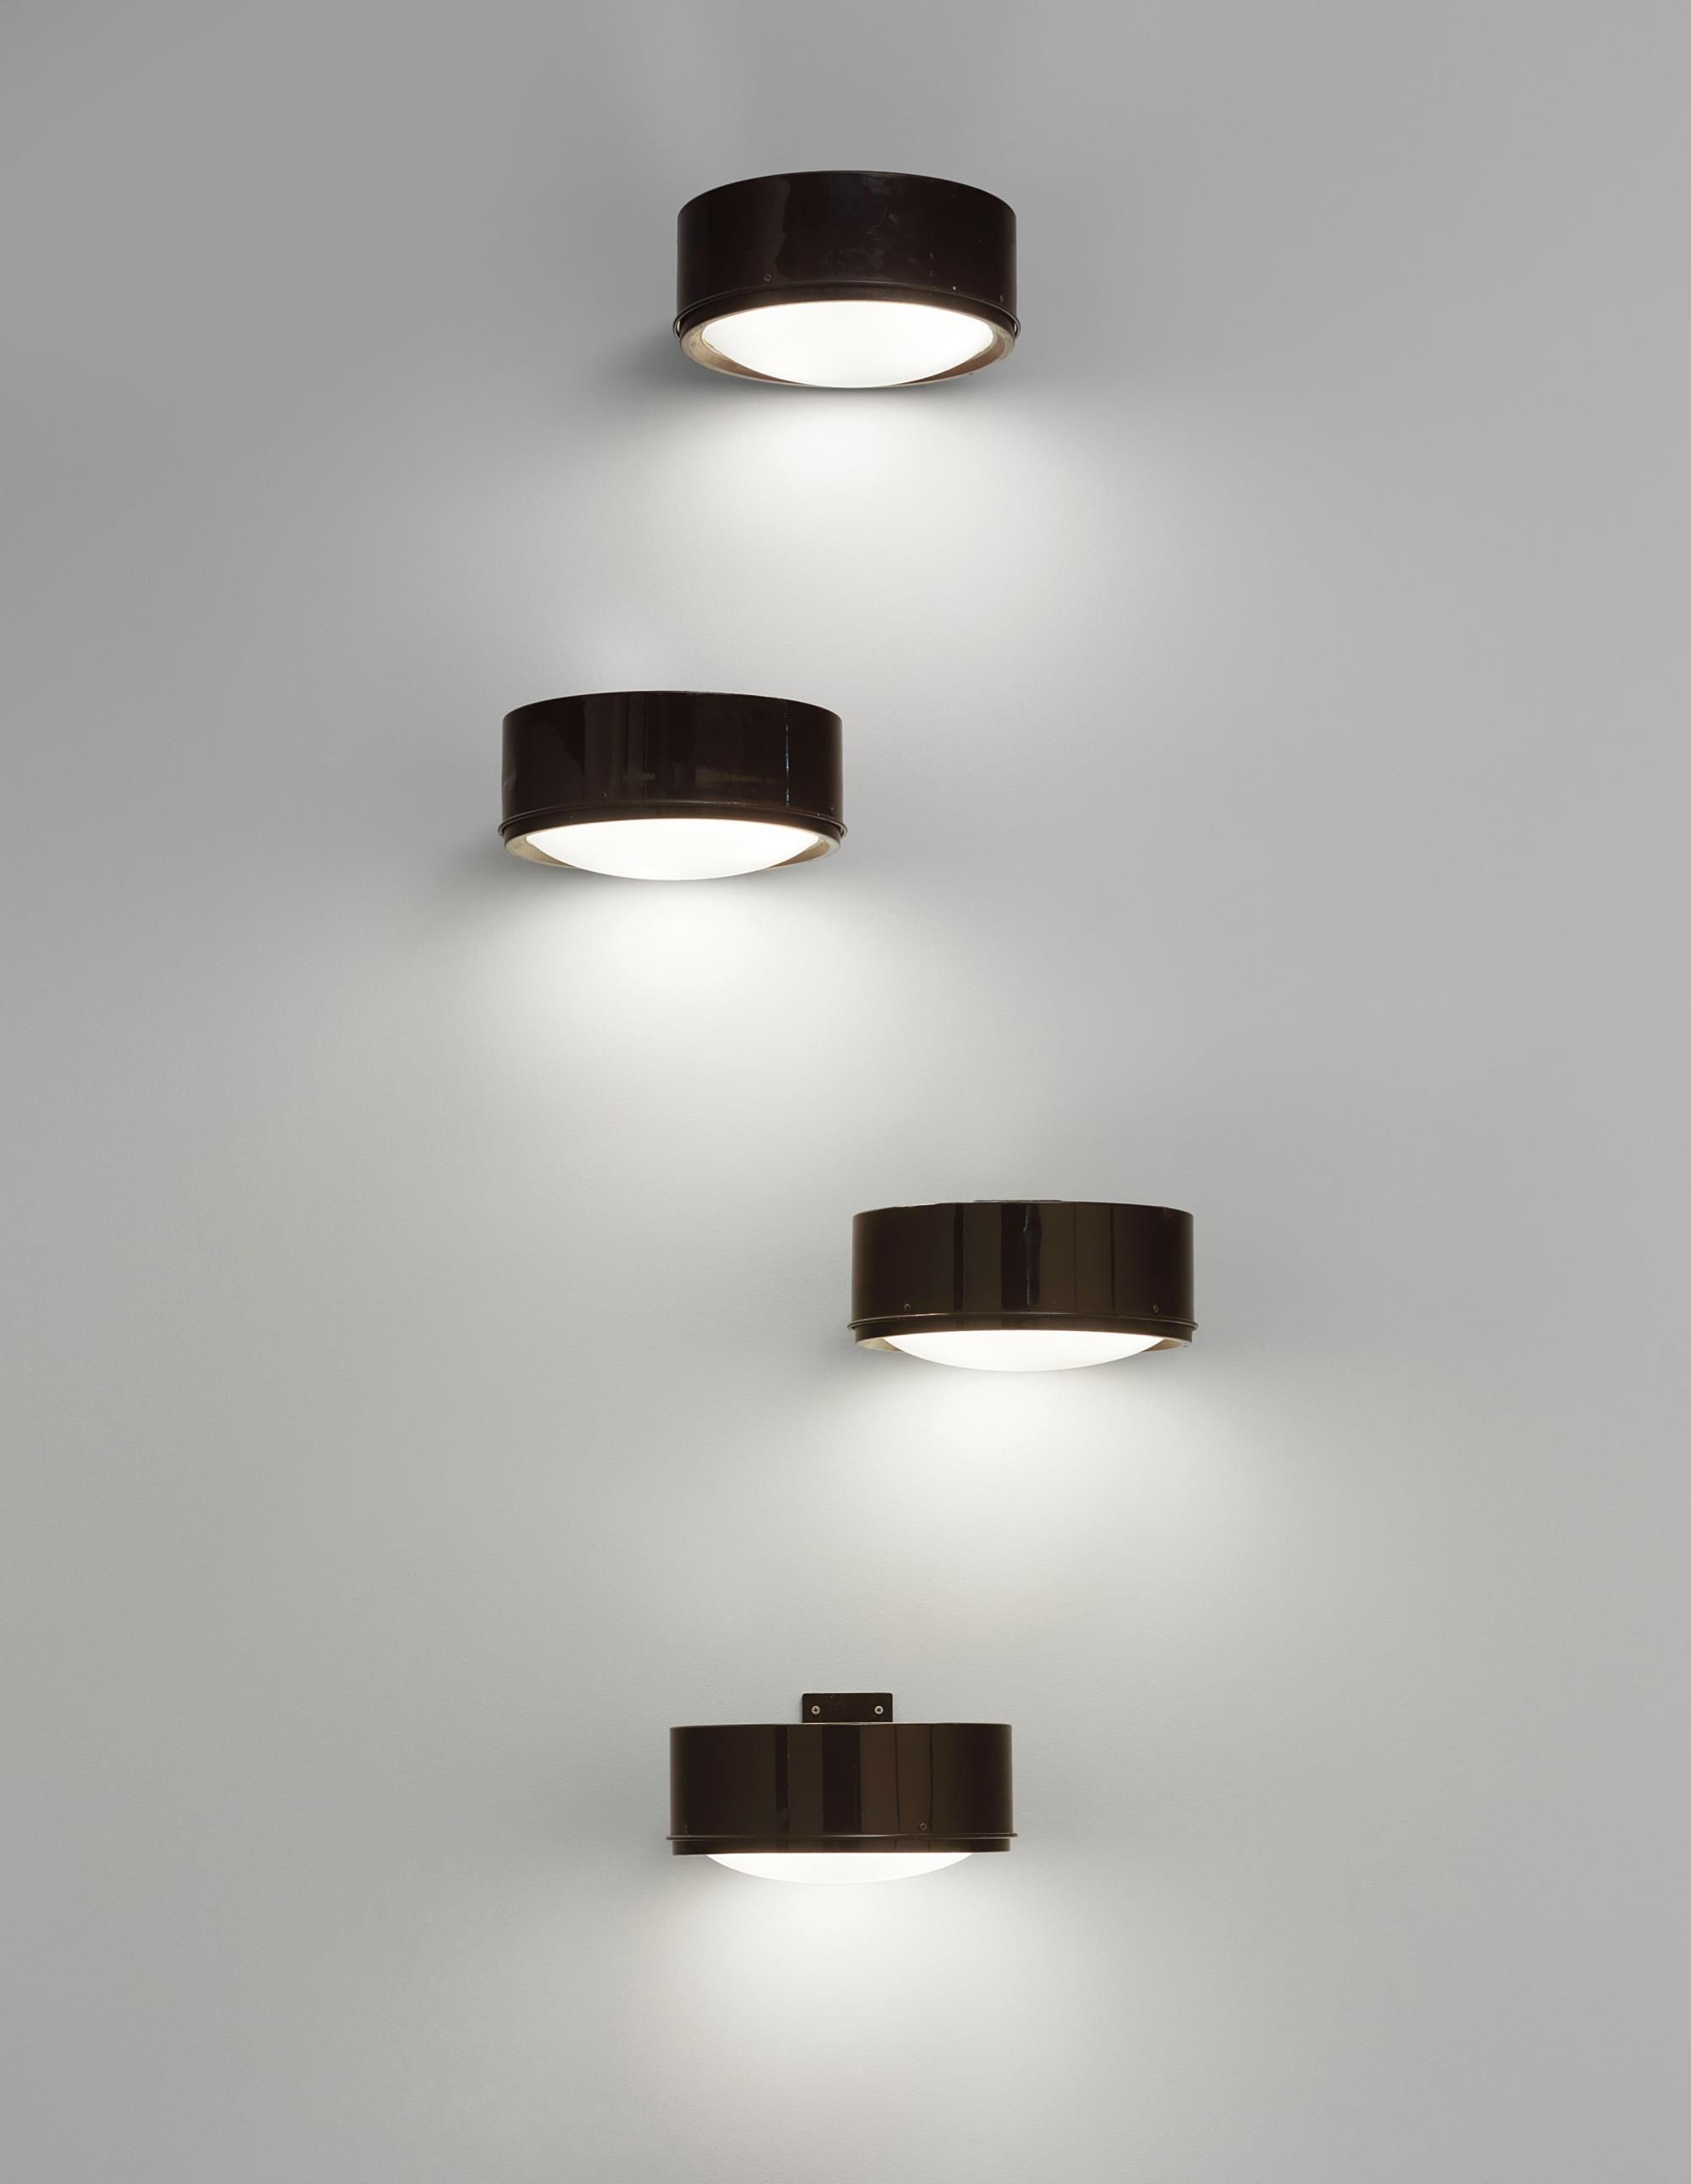 Gino Sarfatti Set Of Four Wall Lights Model No 255 Designed 1966 Painted Aluminium Gl Each 20 5 X 38 41 Cm 8 1 15 16 In